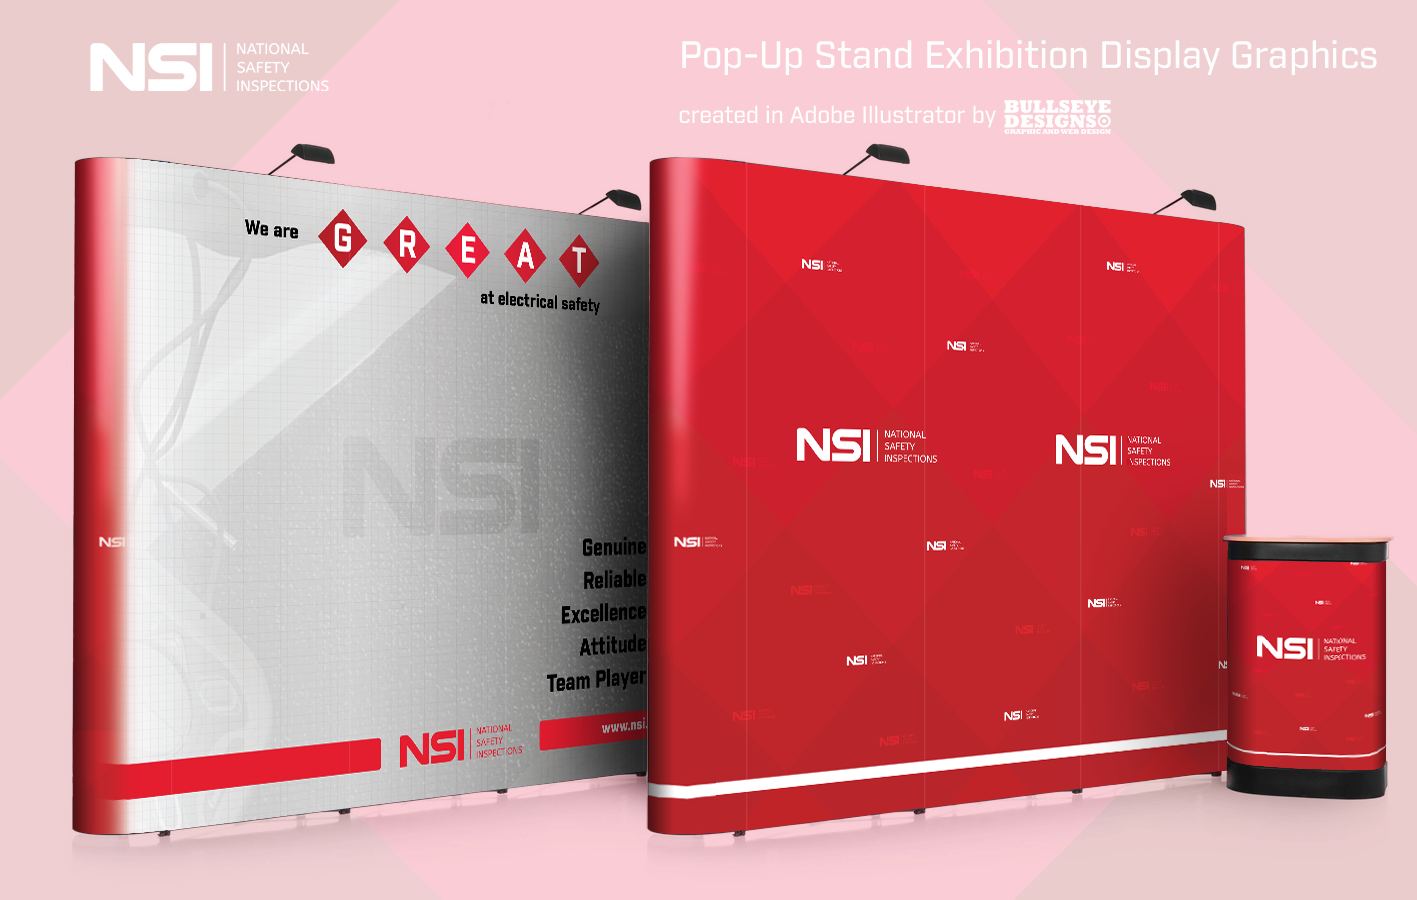 NSI Pop-Up Stand Exhibition Display Graphics